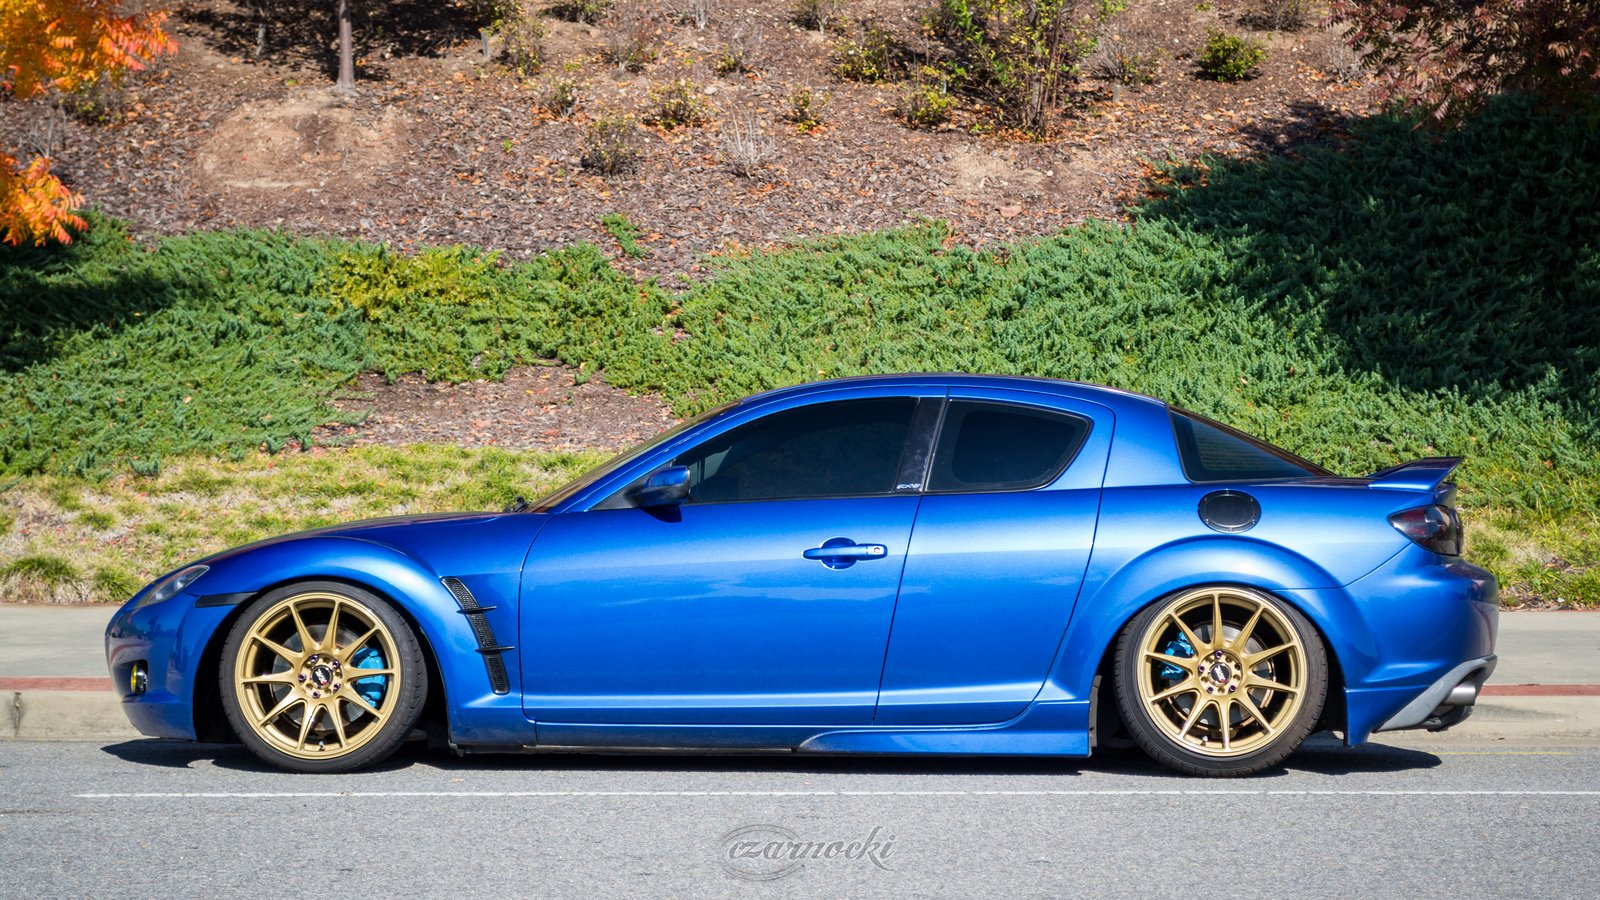 Mazda Rx8 Modified Blue